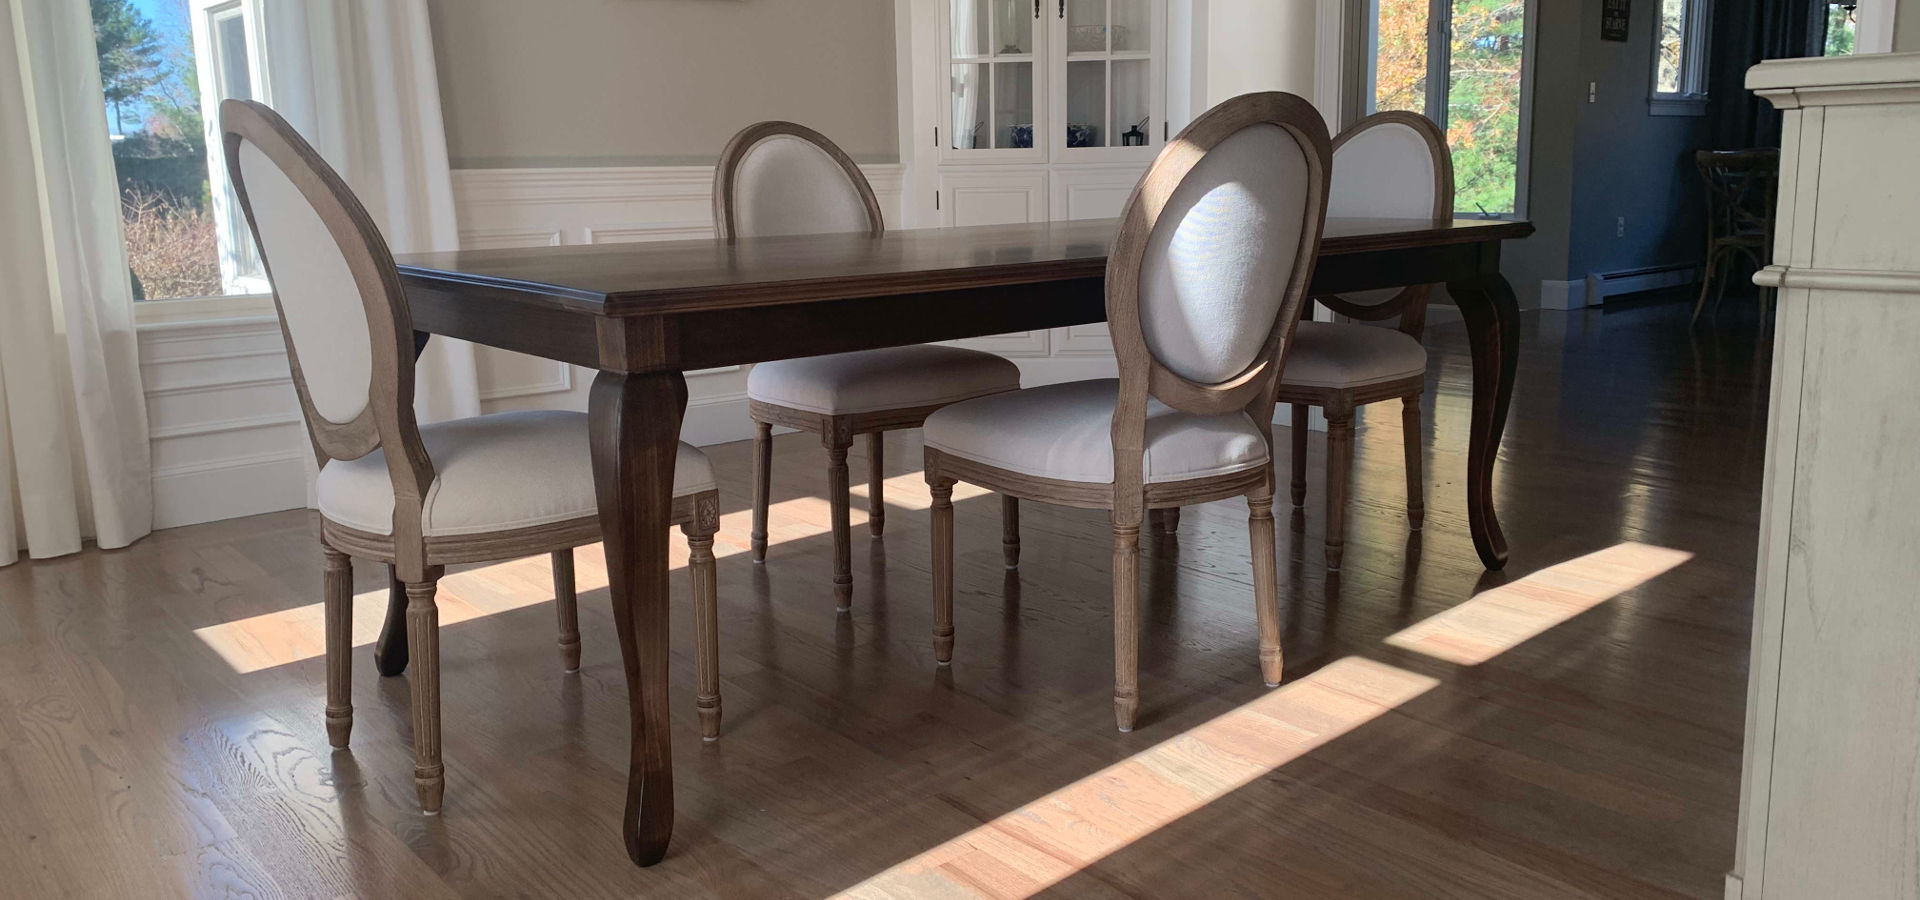 Walnut Table with Cabriole Legs